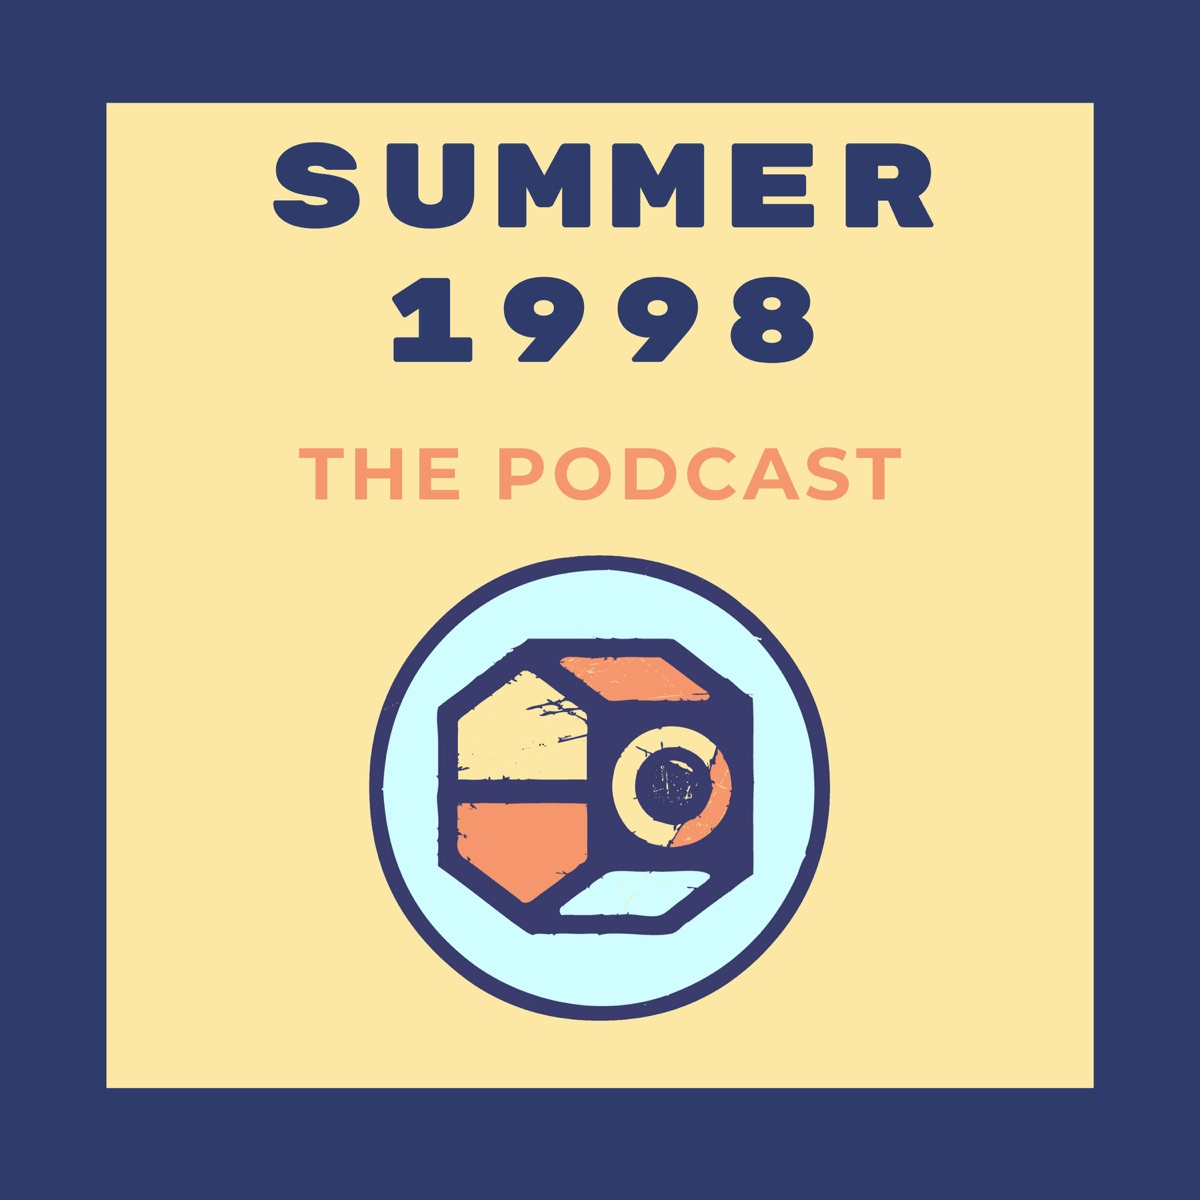 Summer 1998: The Podcast